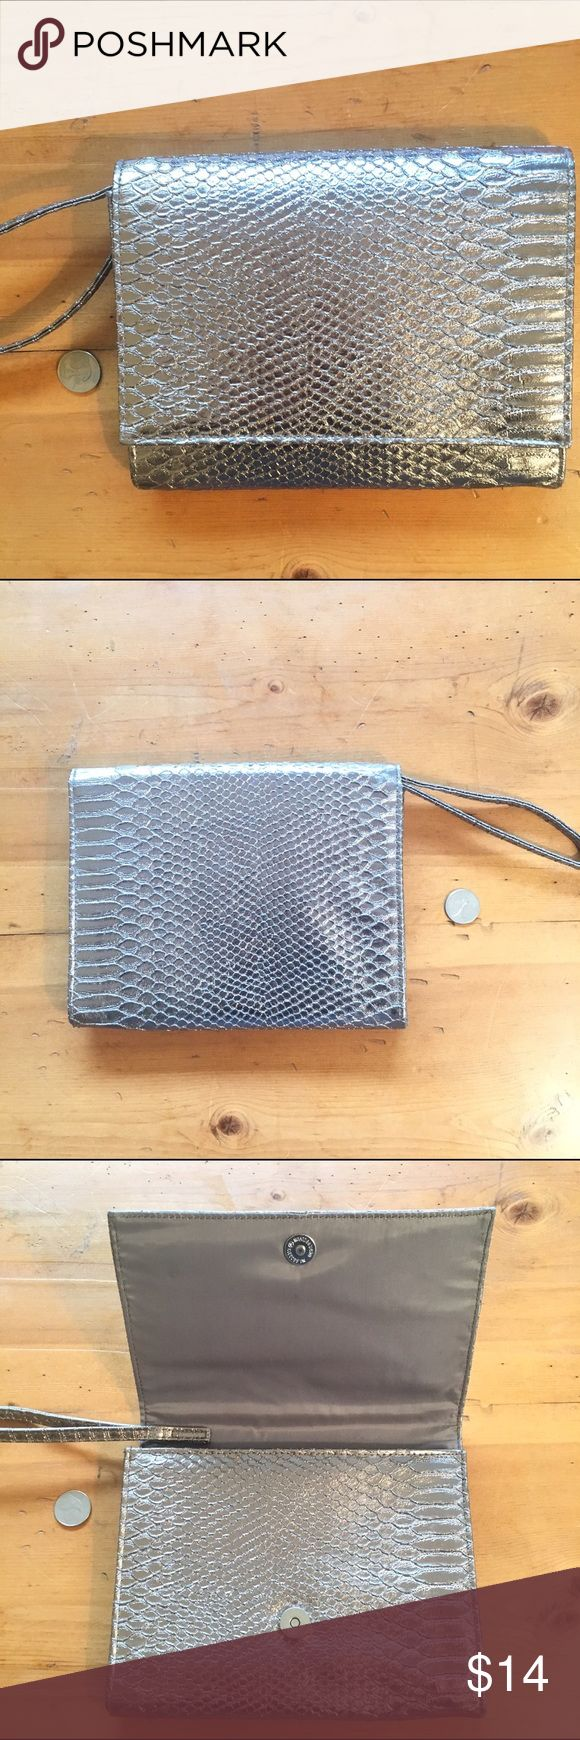 Nieman Marcus Wristlet Great condition silver inside wipes clean 7 1/2 in deep 9 in deep wear with or without Wristlet strap wonderful basic or dressed up 💕 Neiman Marcus Bags Clutches & Wristlets